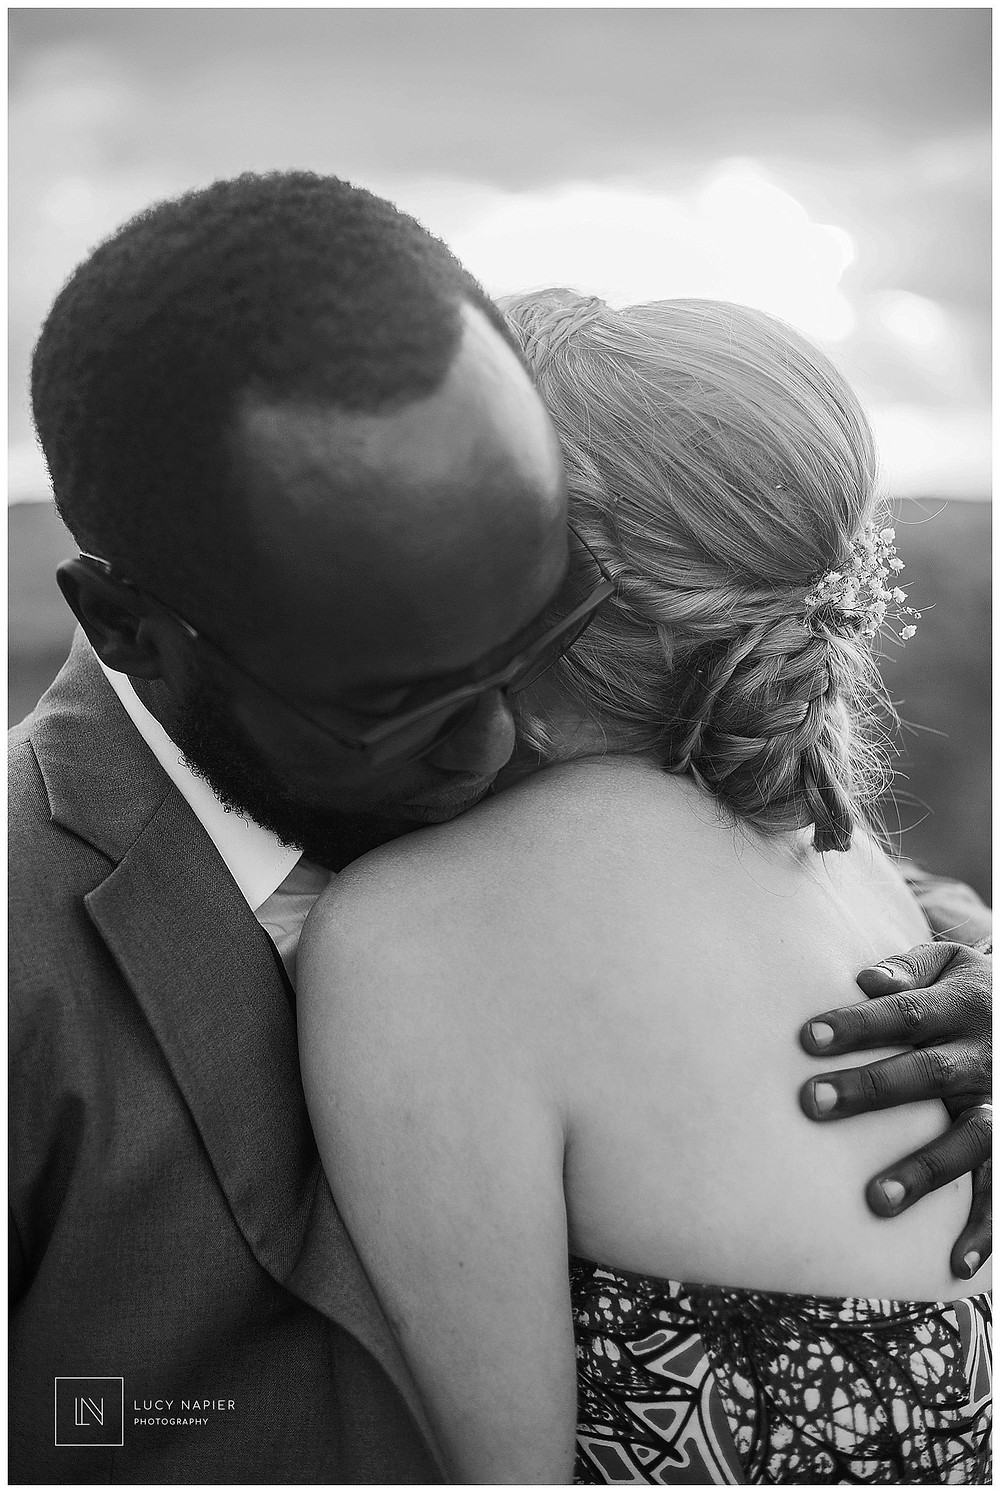 black and white portrait of a hug